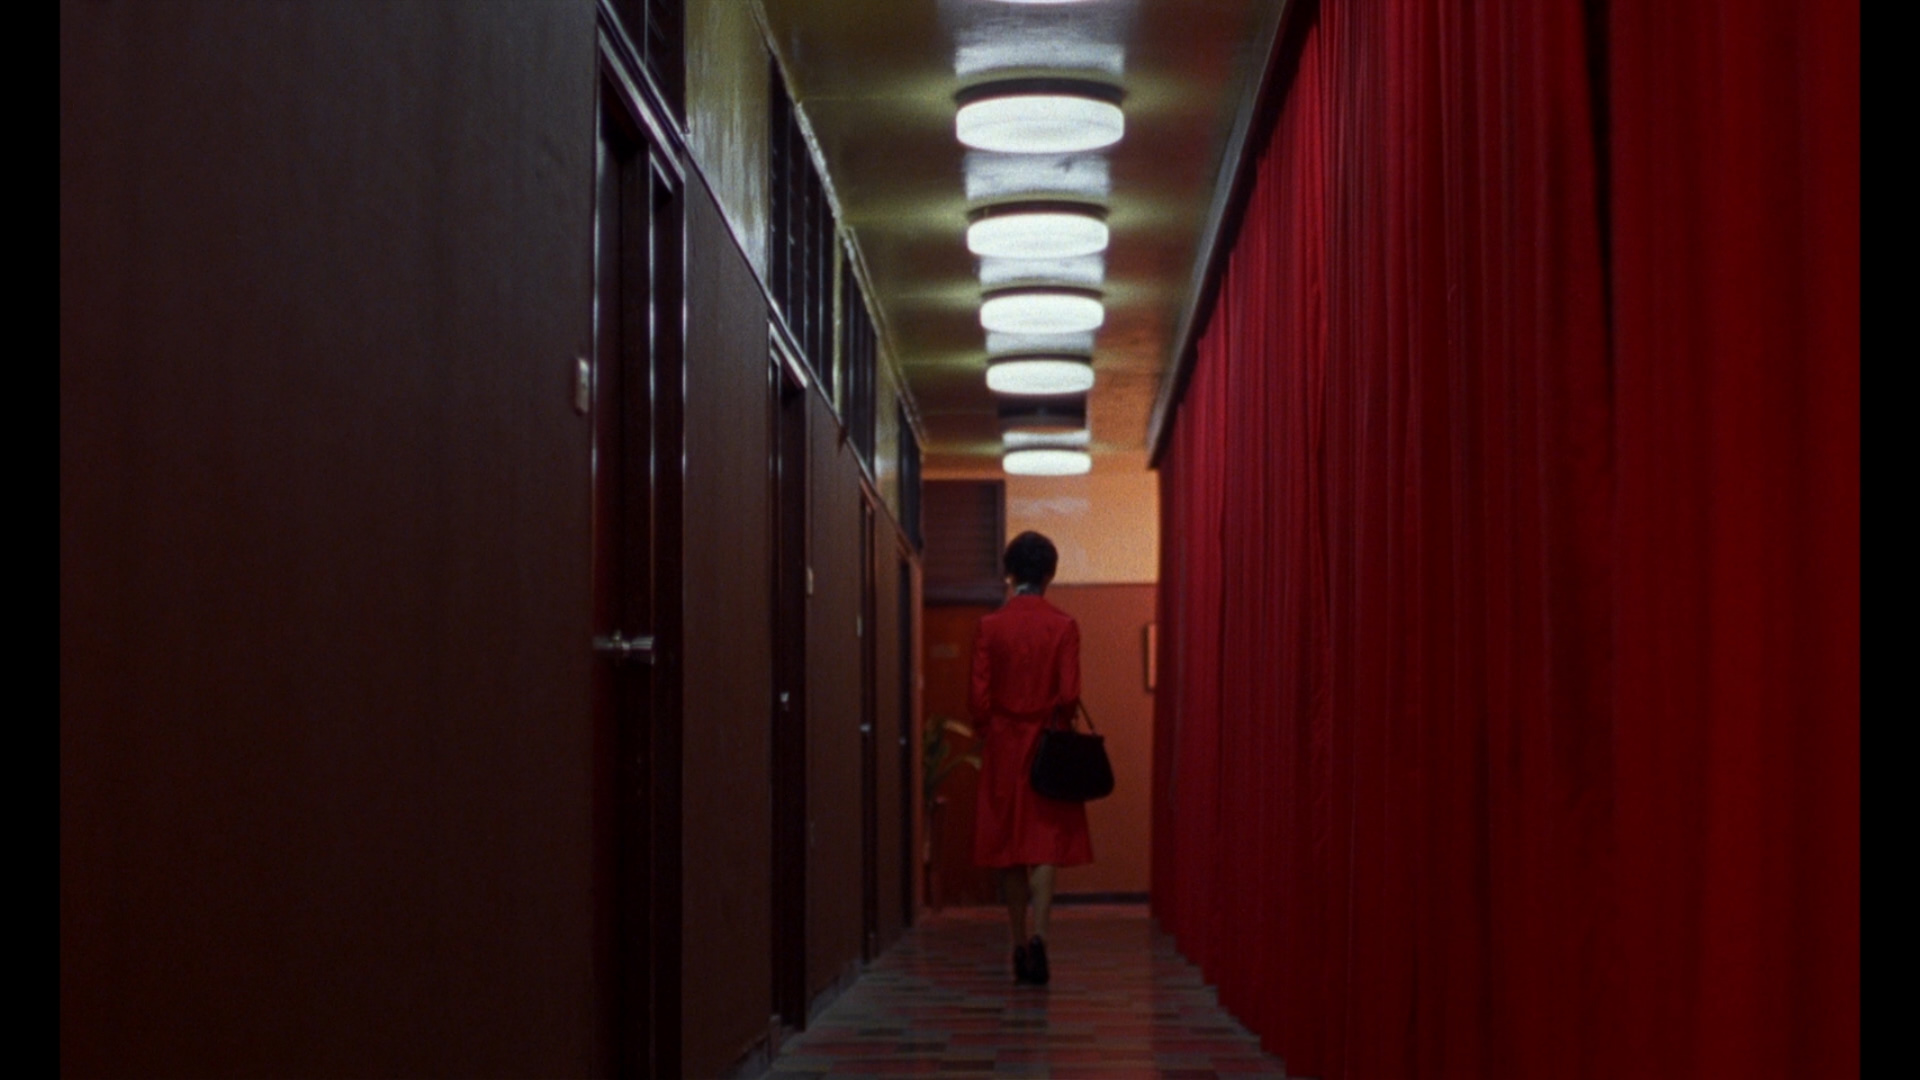 Antichrist Hd Wallpaper 1 In The Mood For Love Hd Wallpapers Background Images